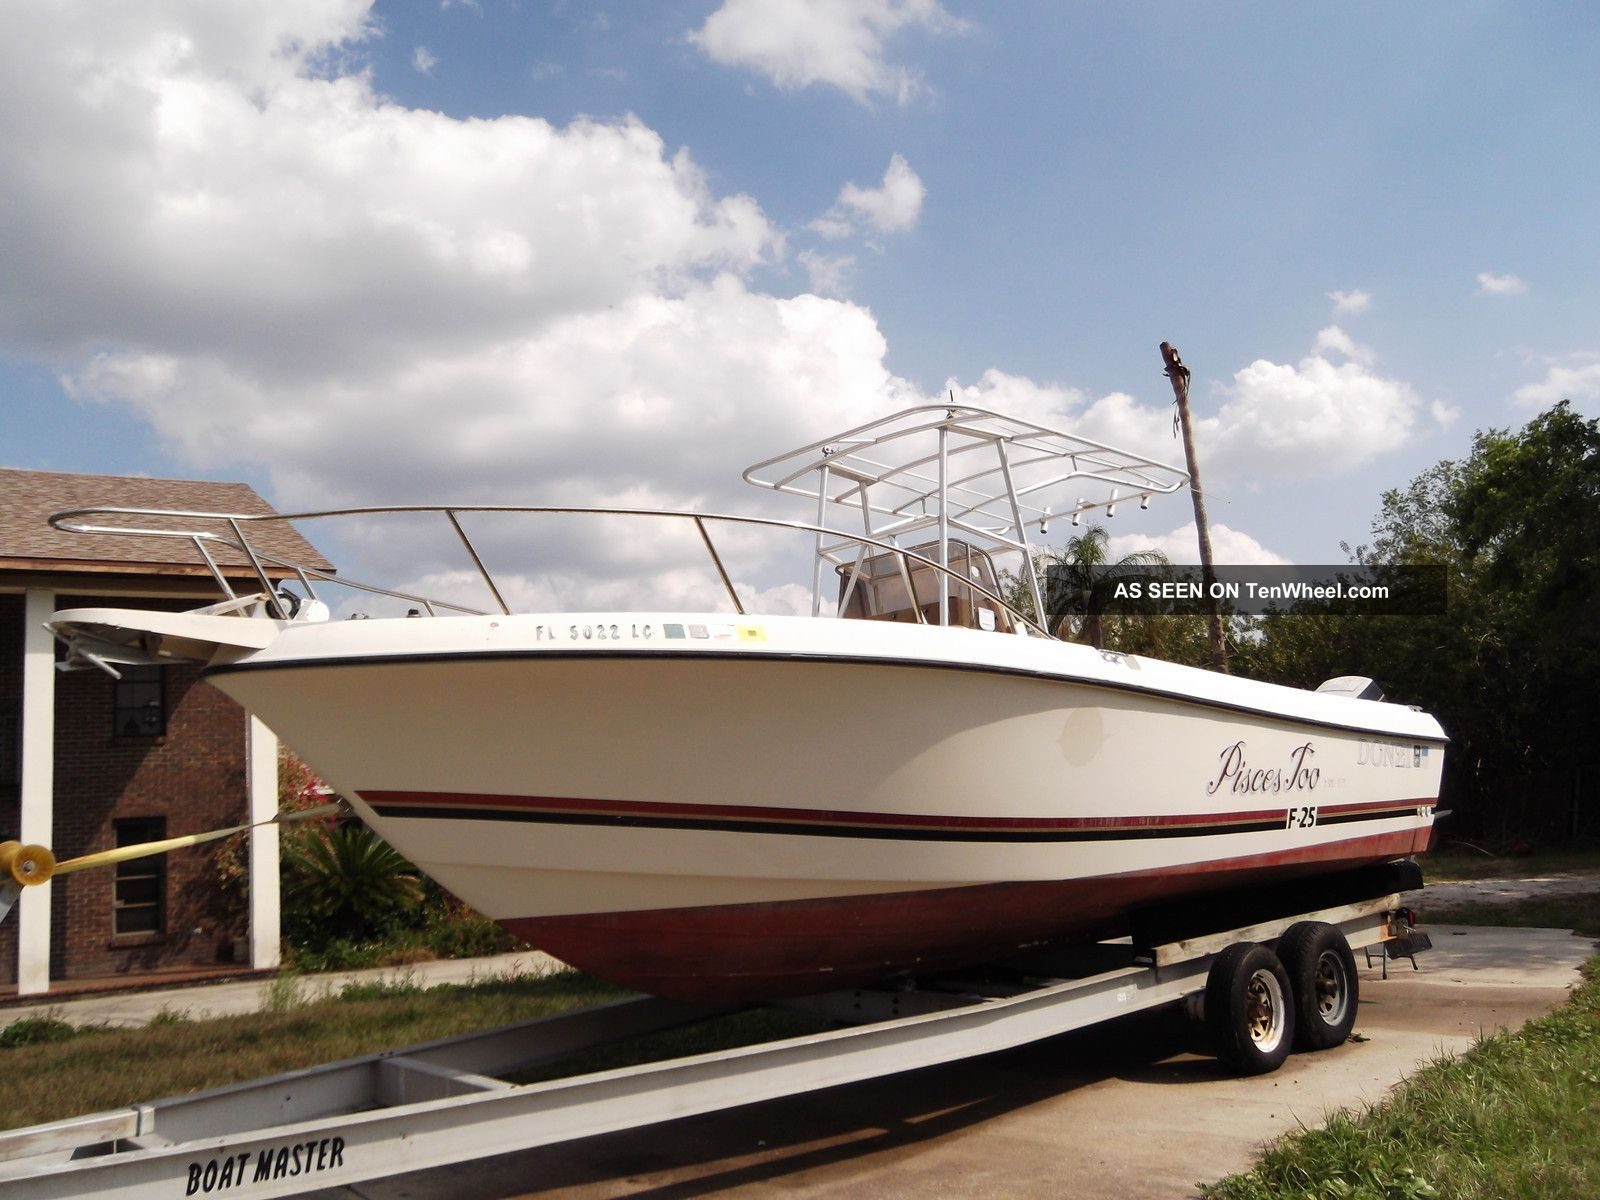 1990 donzi marine f25 for Donzi fishing boats